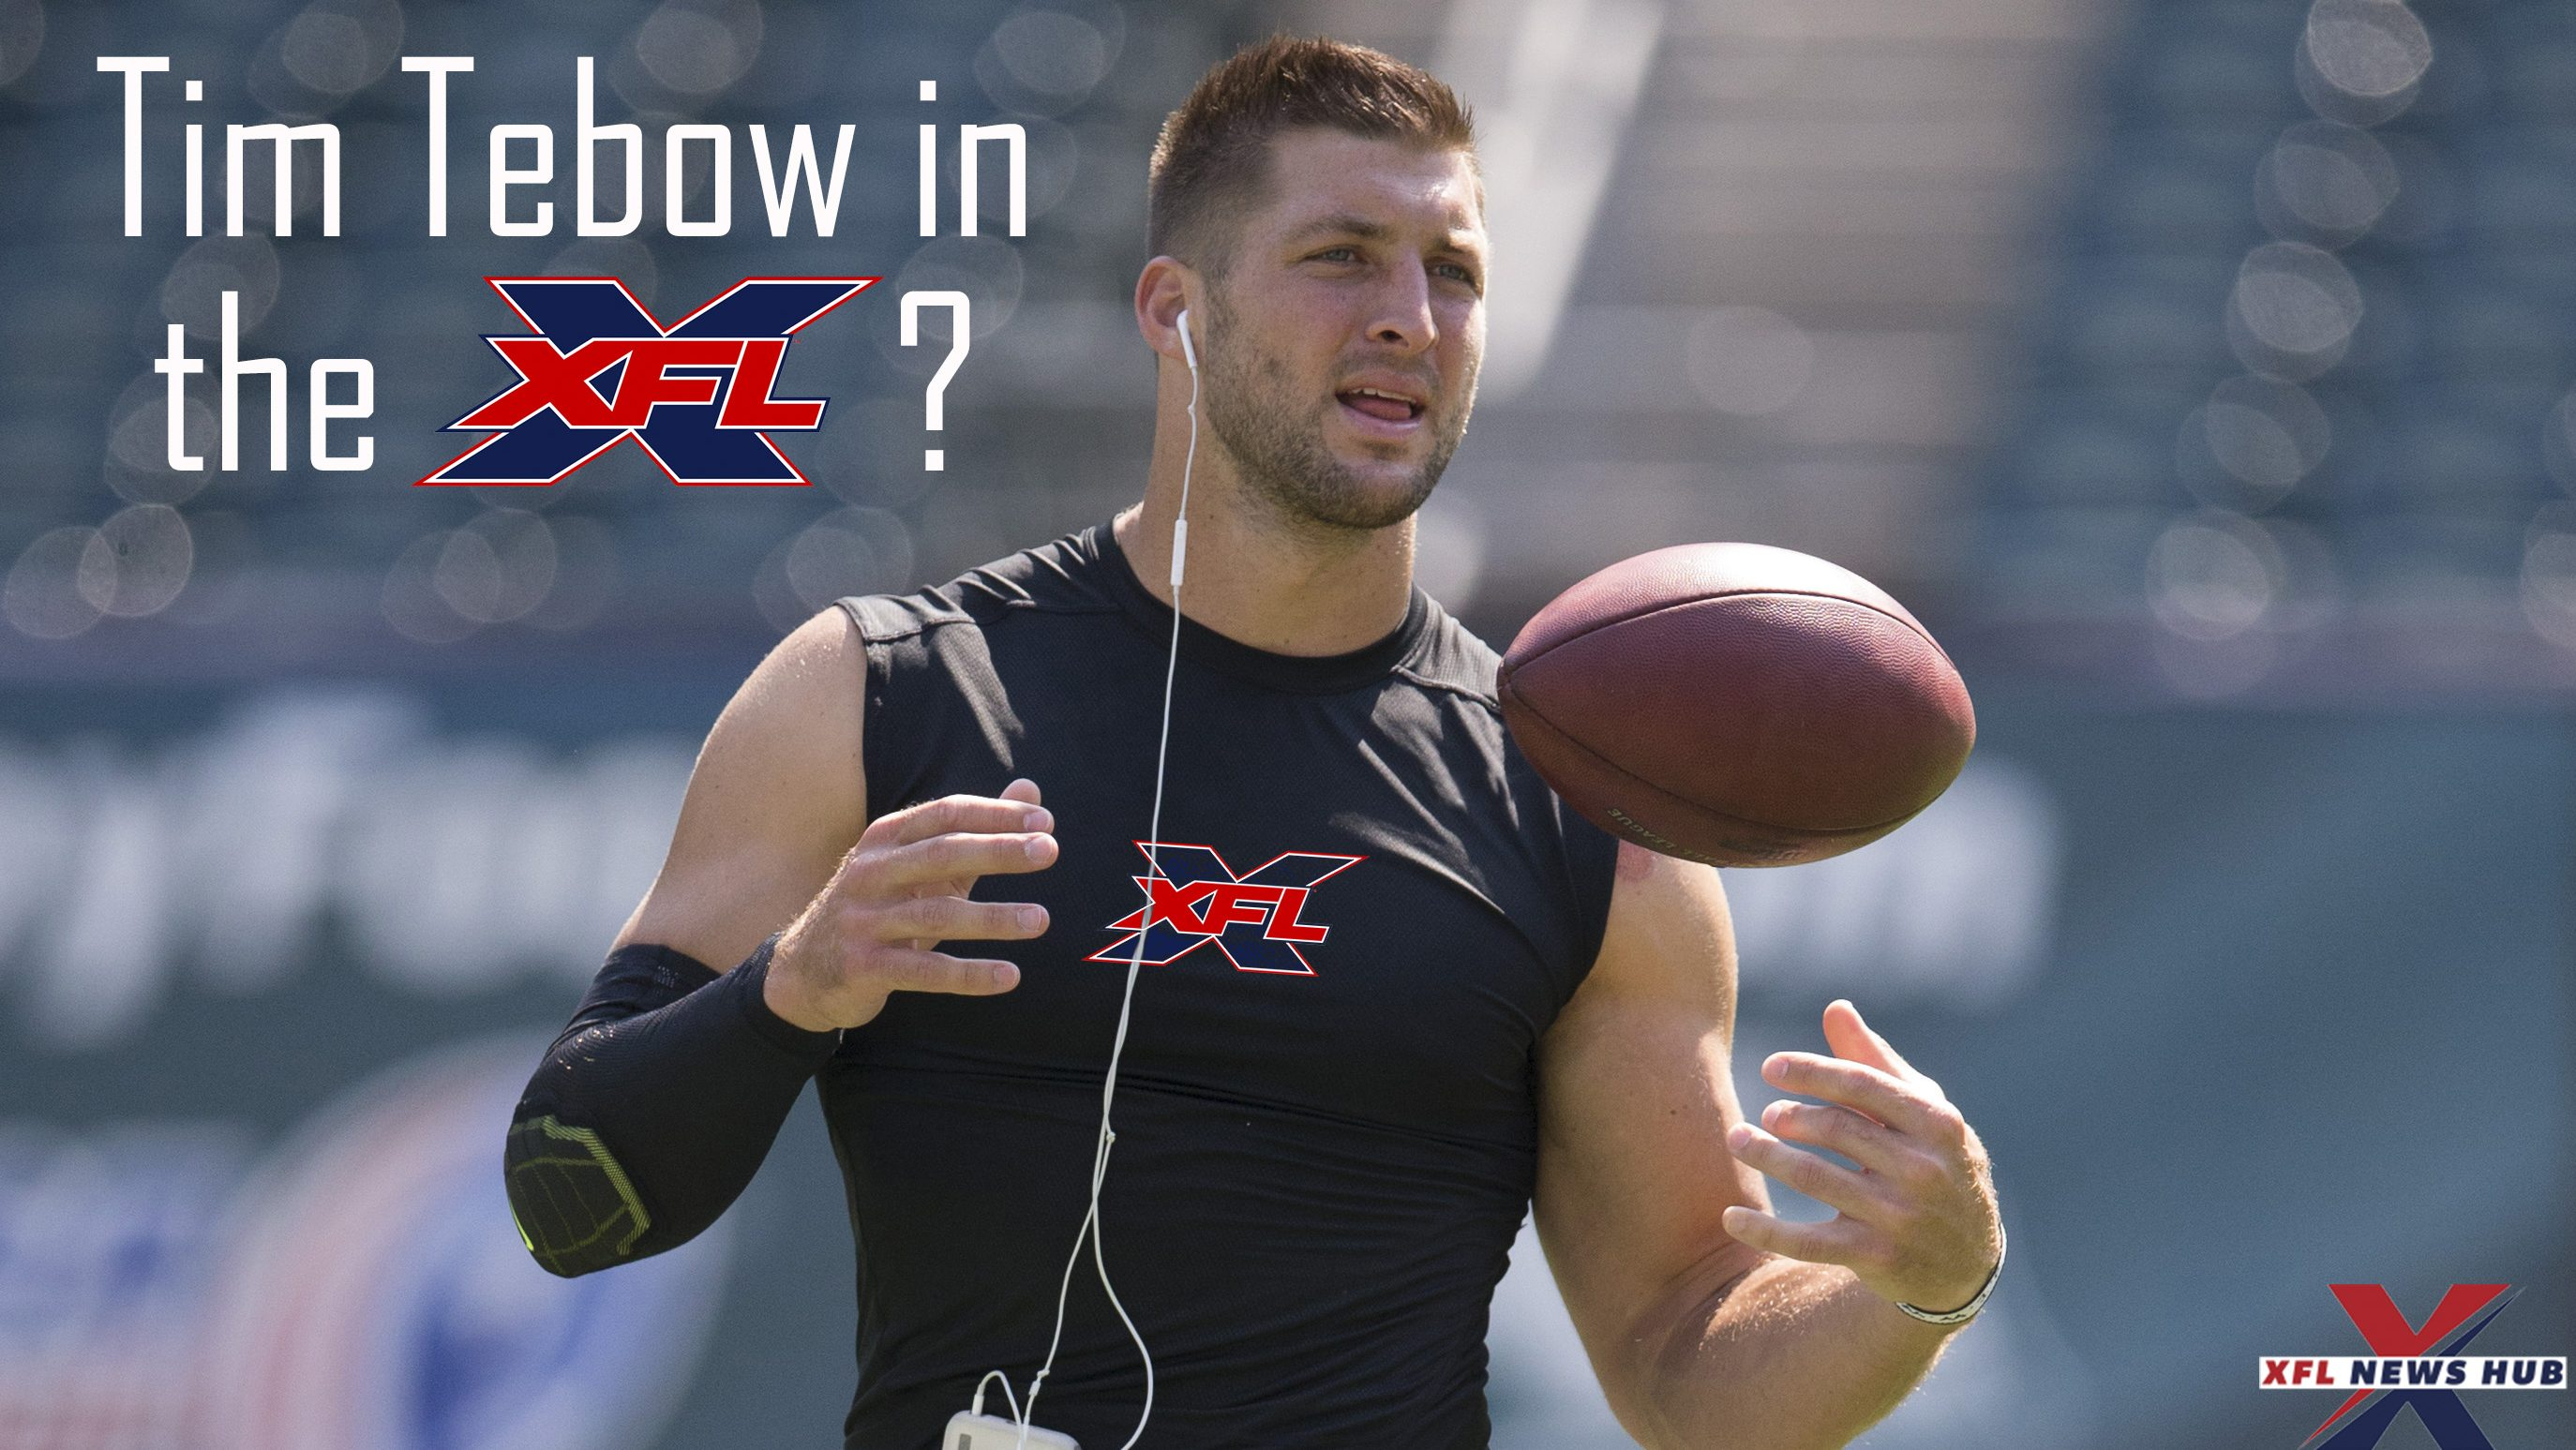 cropped-tim-tebow-in-the-XFL-1.jpg